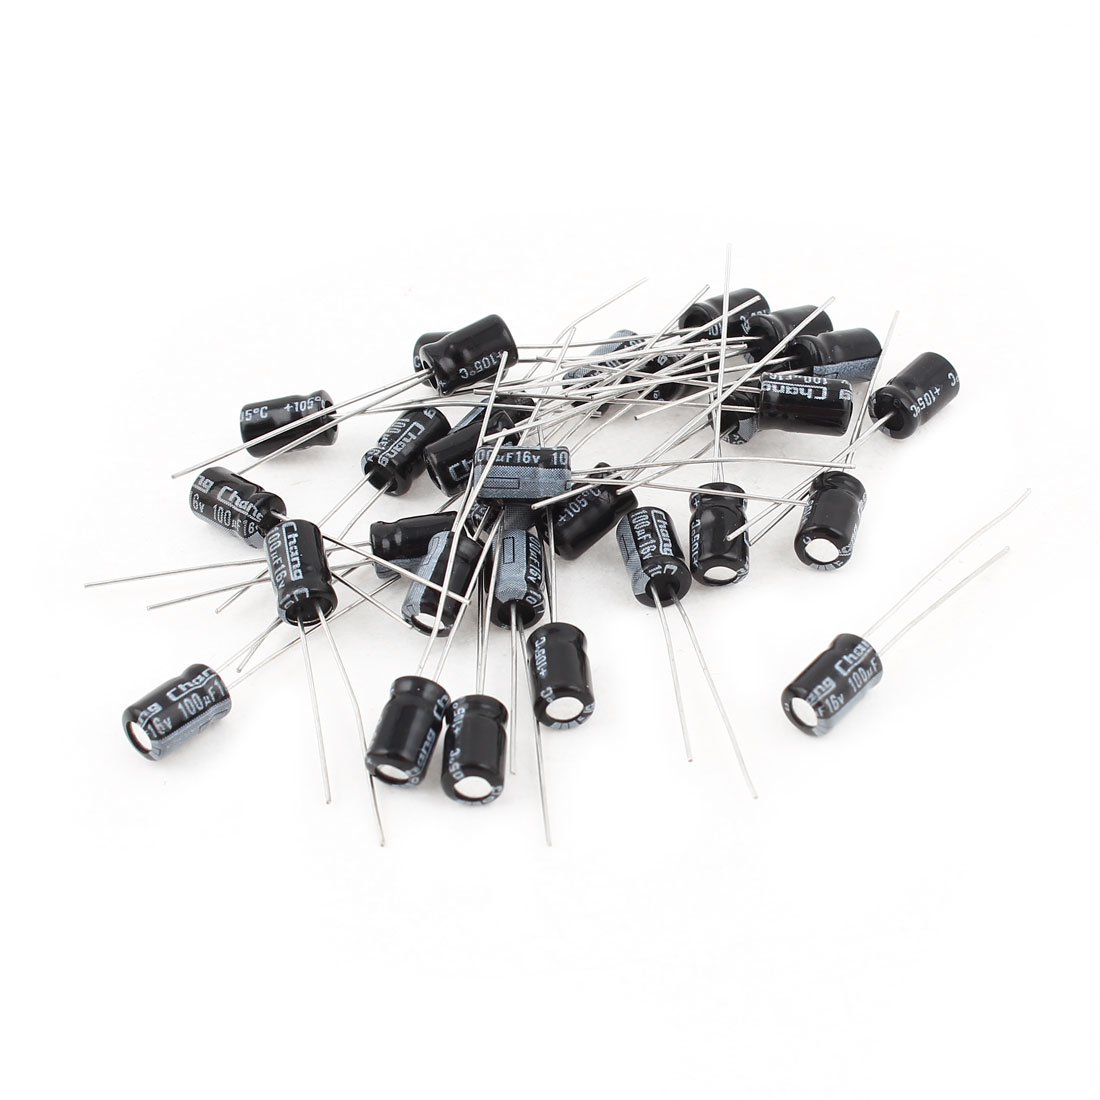 30 Pcs Radial Lead Aluminium Electrolytic Capacitor 16V 100uF 5x7mm